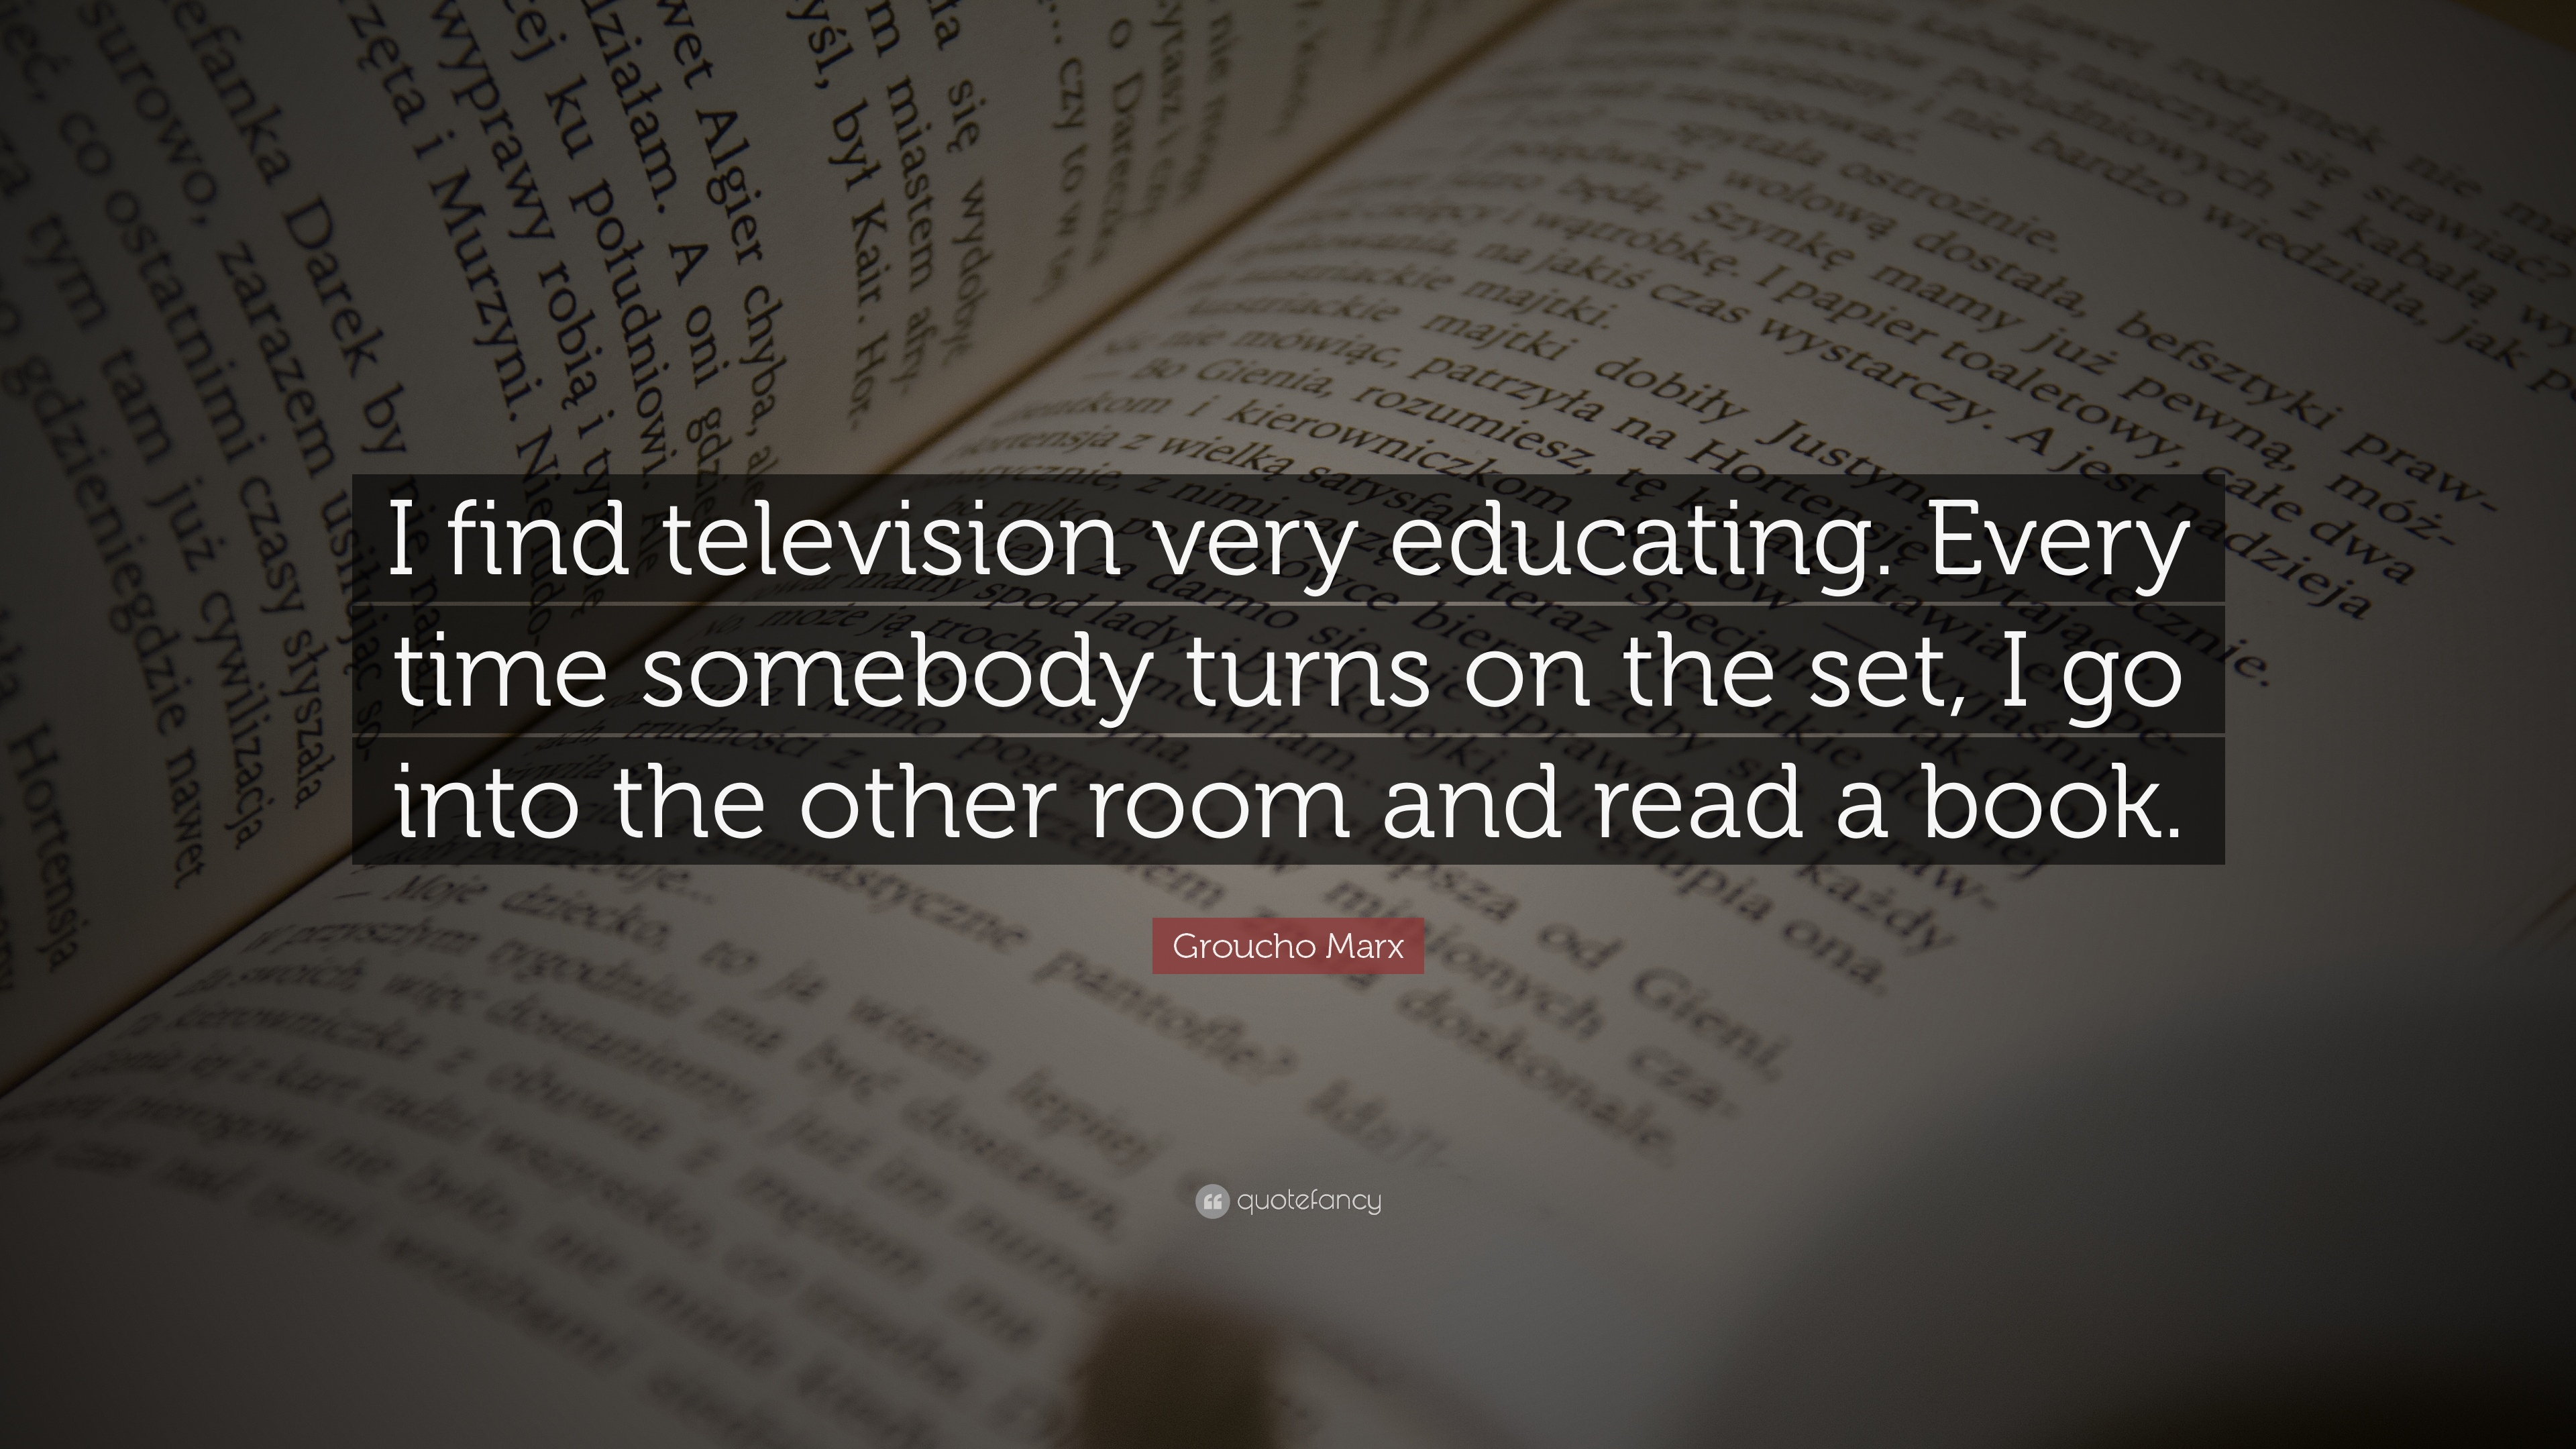 TV is better than Books